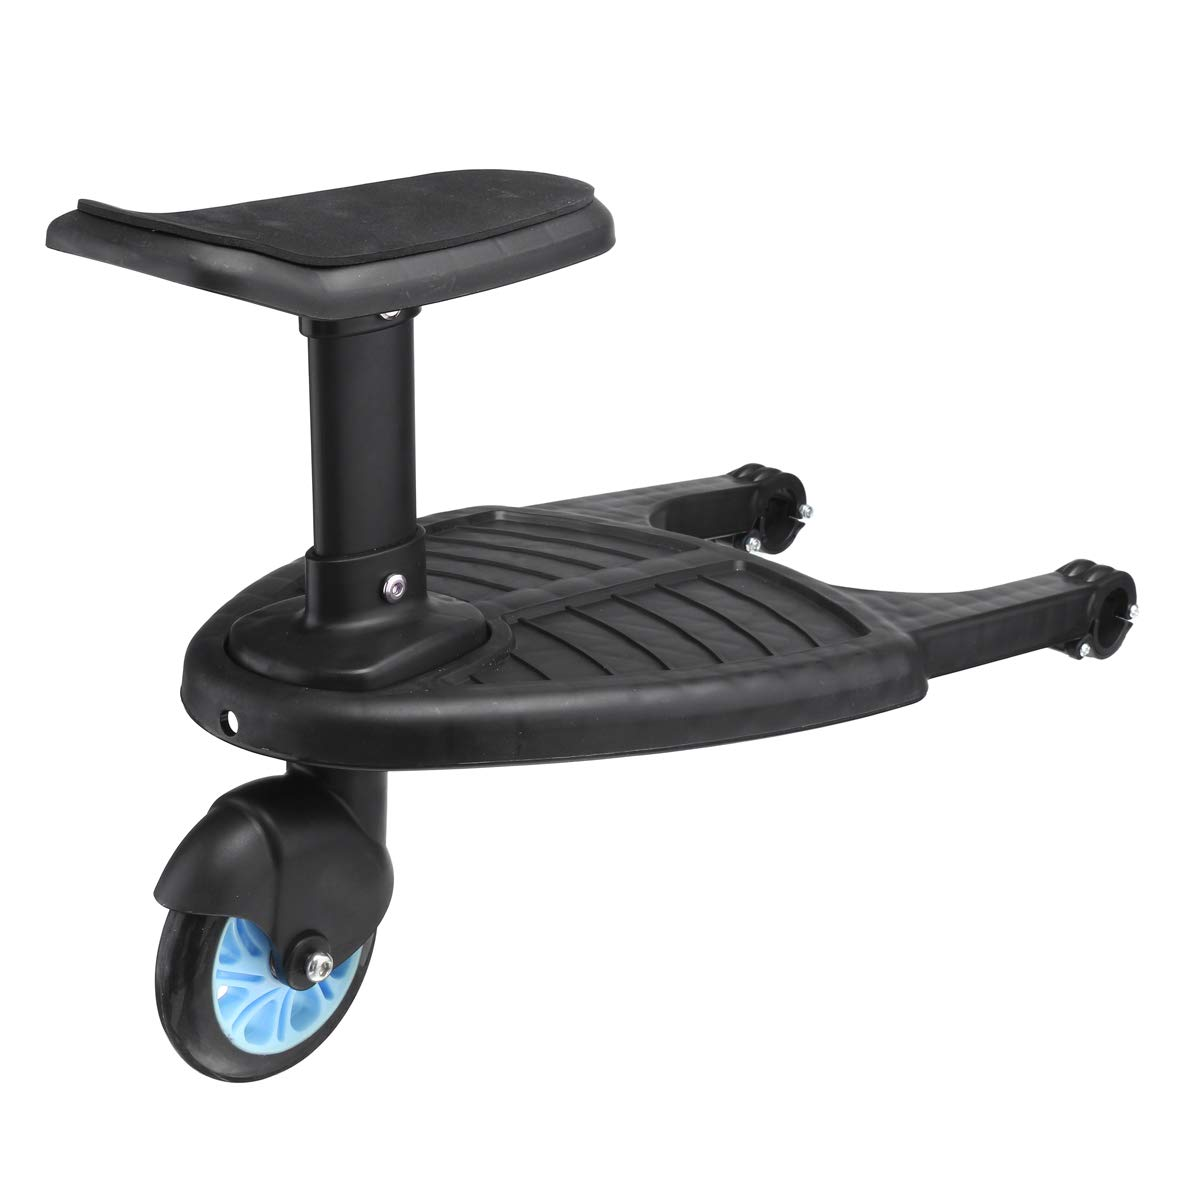 ZUINIUBI Kids Hitch Ride-On Stroller Step Board-Comfort Easy Adjustable Wheeled Pushchair Auxiliary Pedal Baby Travel Trailer for Stroller, Buggy, Jogger up Load to 55LB